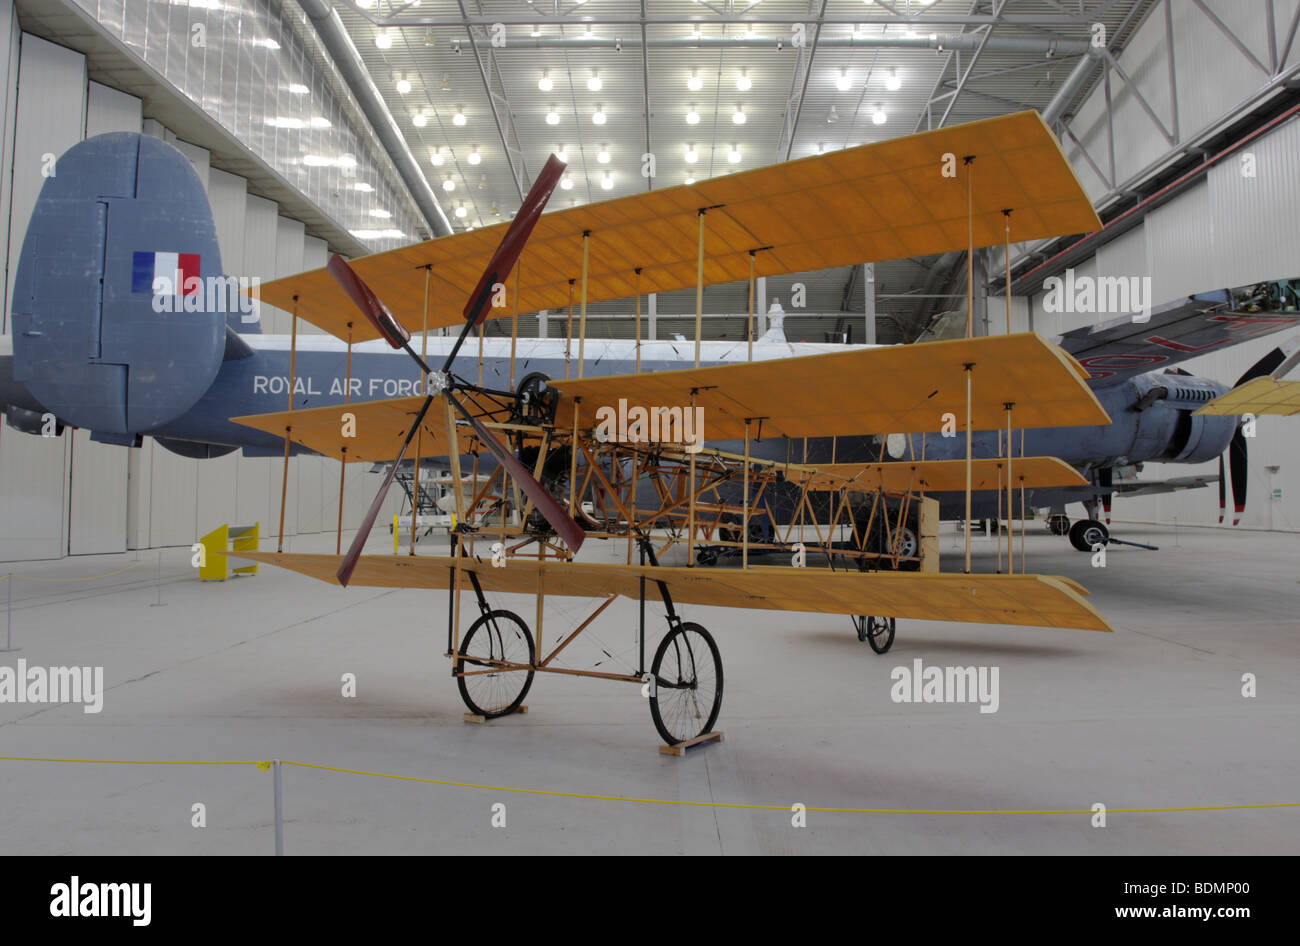 Replica of an early 20th century aircraft,situated in the Air Space Hangar at IWM Duxford,Cambridgeshire,England. - Stock Image